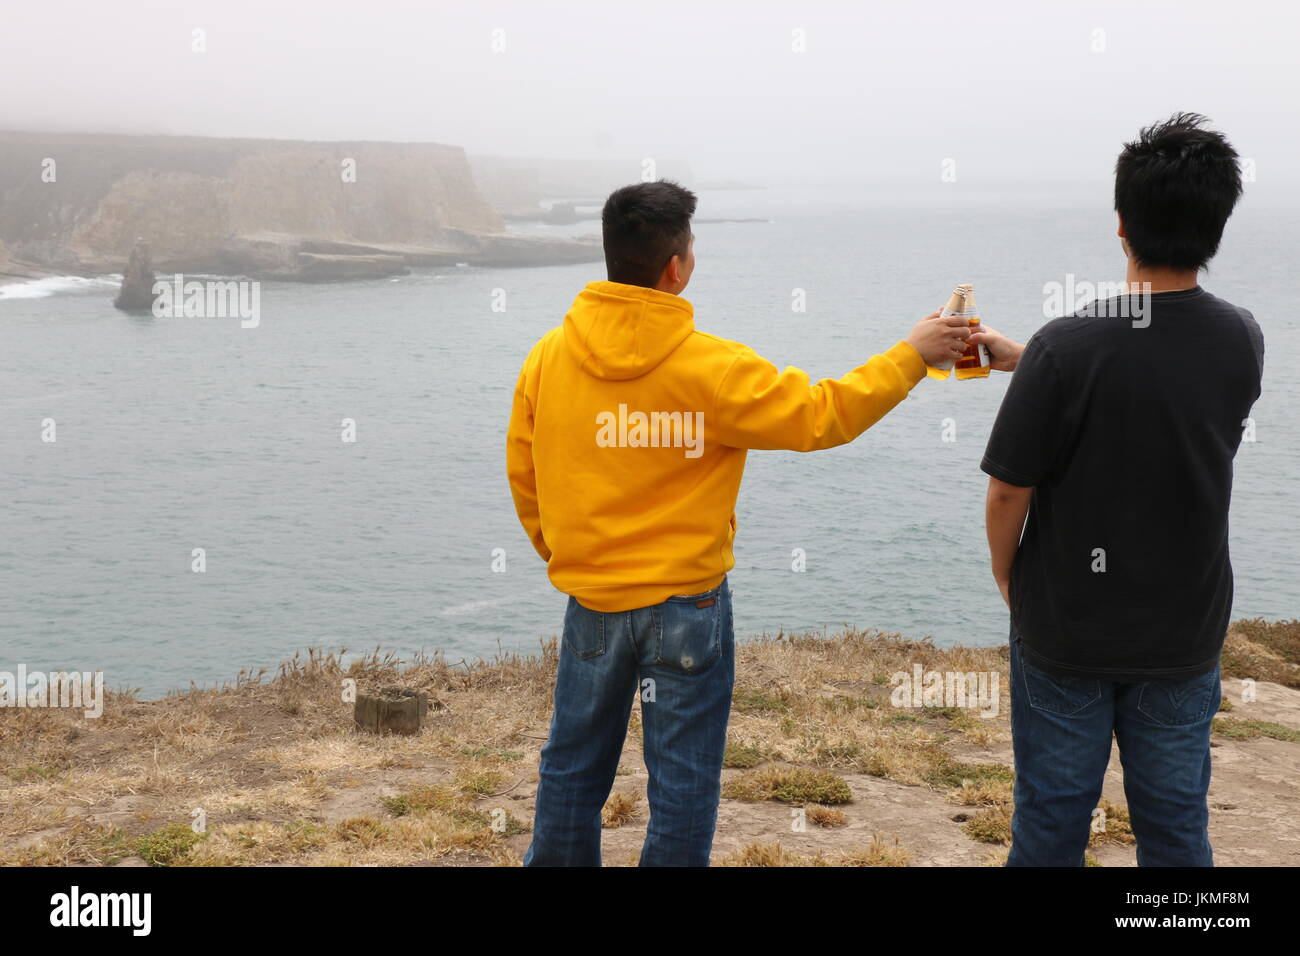 Two young Asian men raise a toast to the beautiful view, Davenport CA. - Stock Image